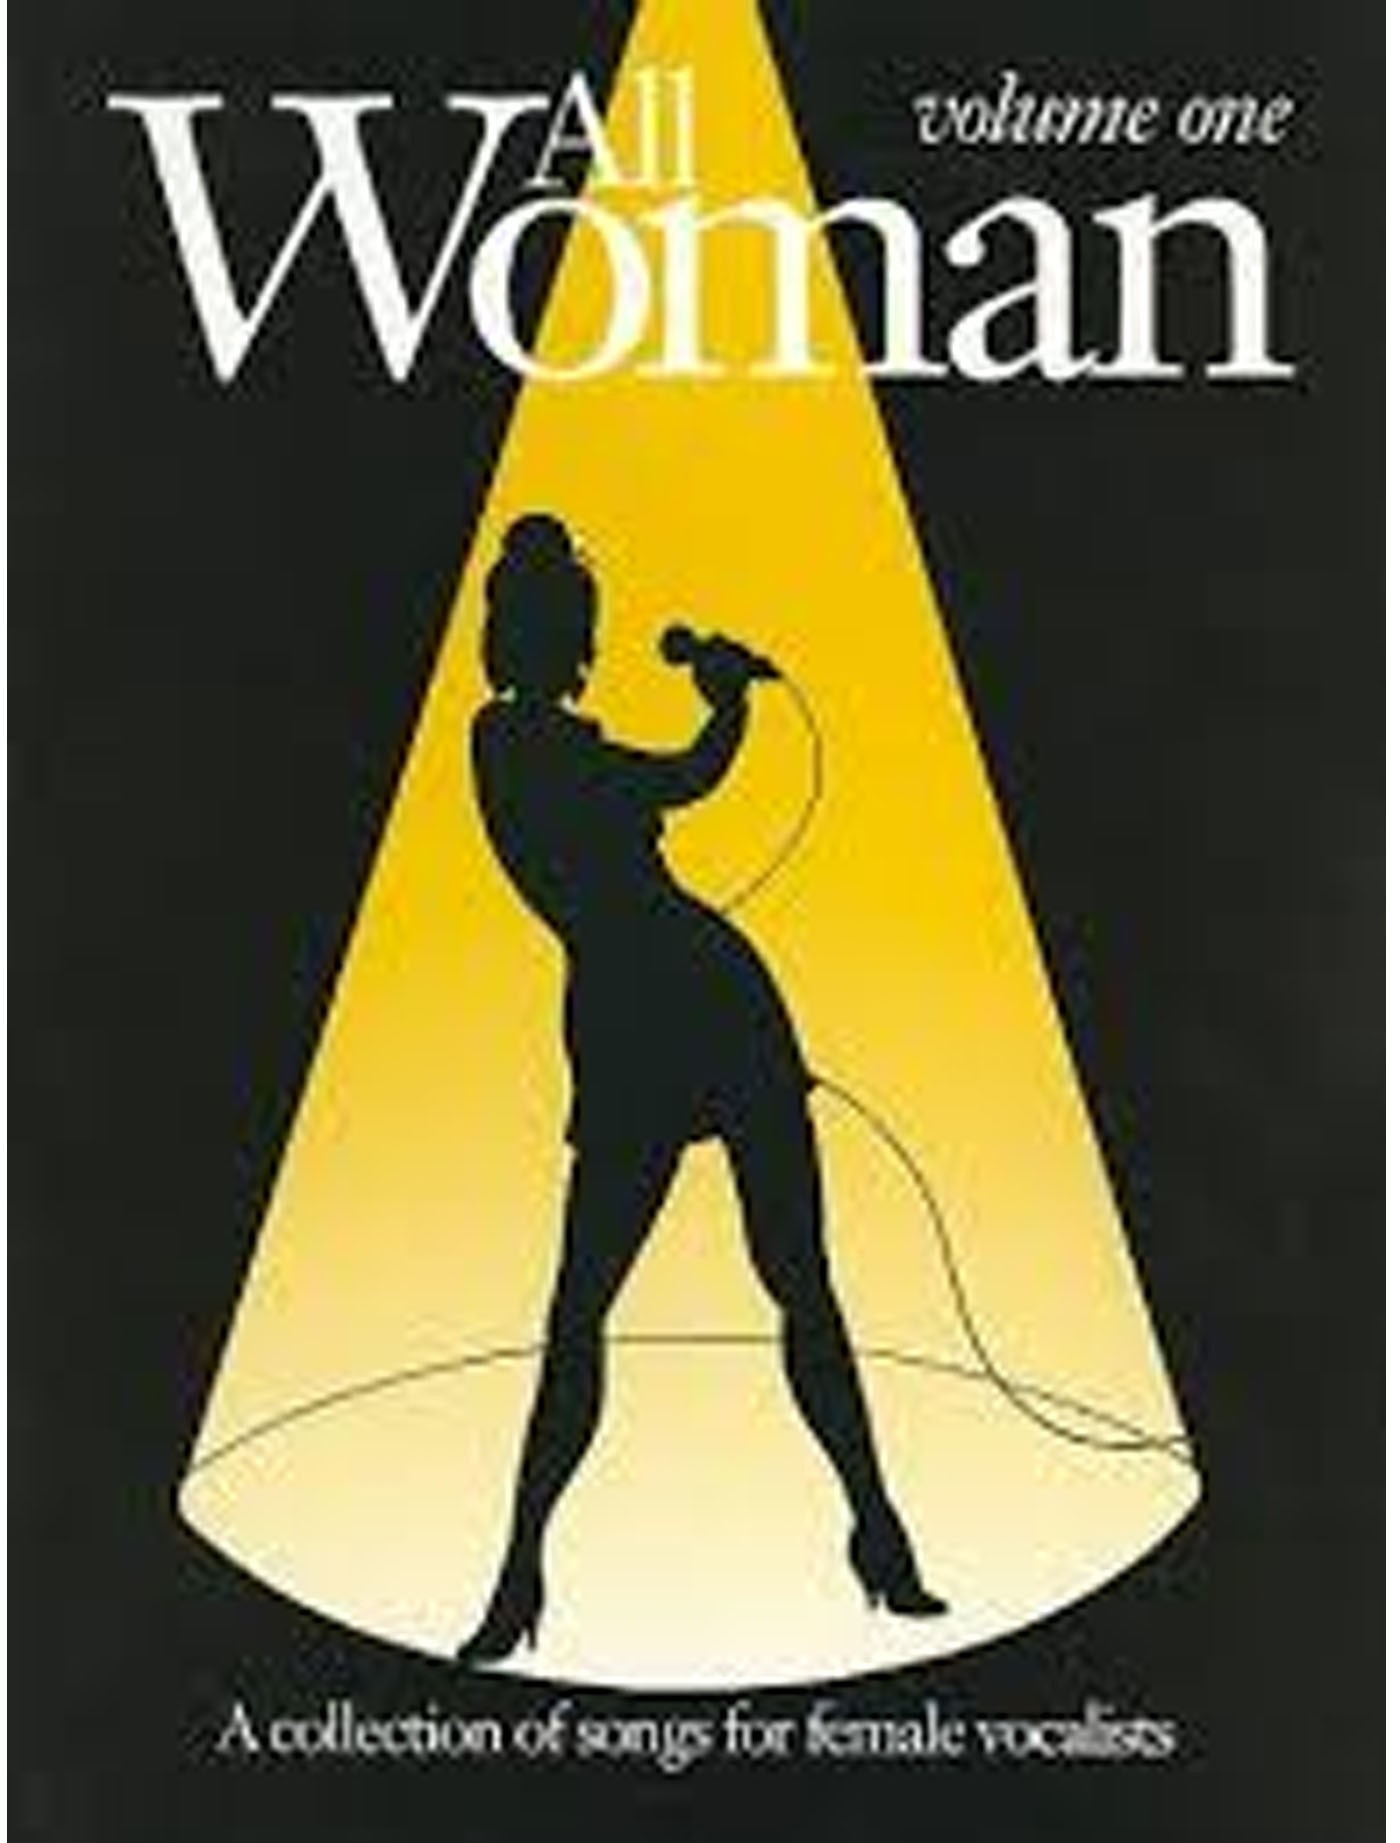 All Woman Volume One A Collection Of Songs For Female Vocalists S146